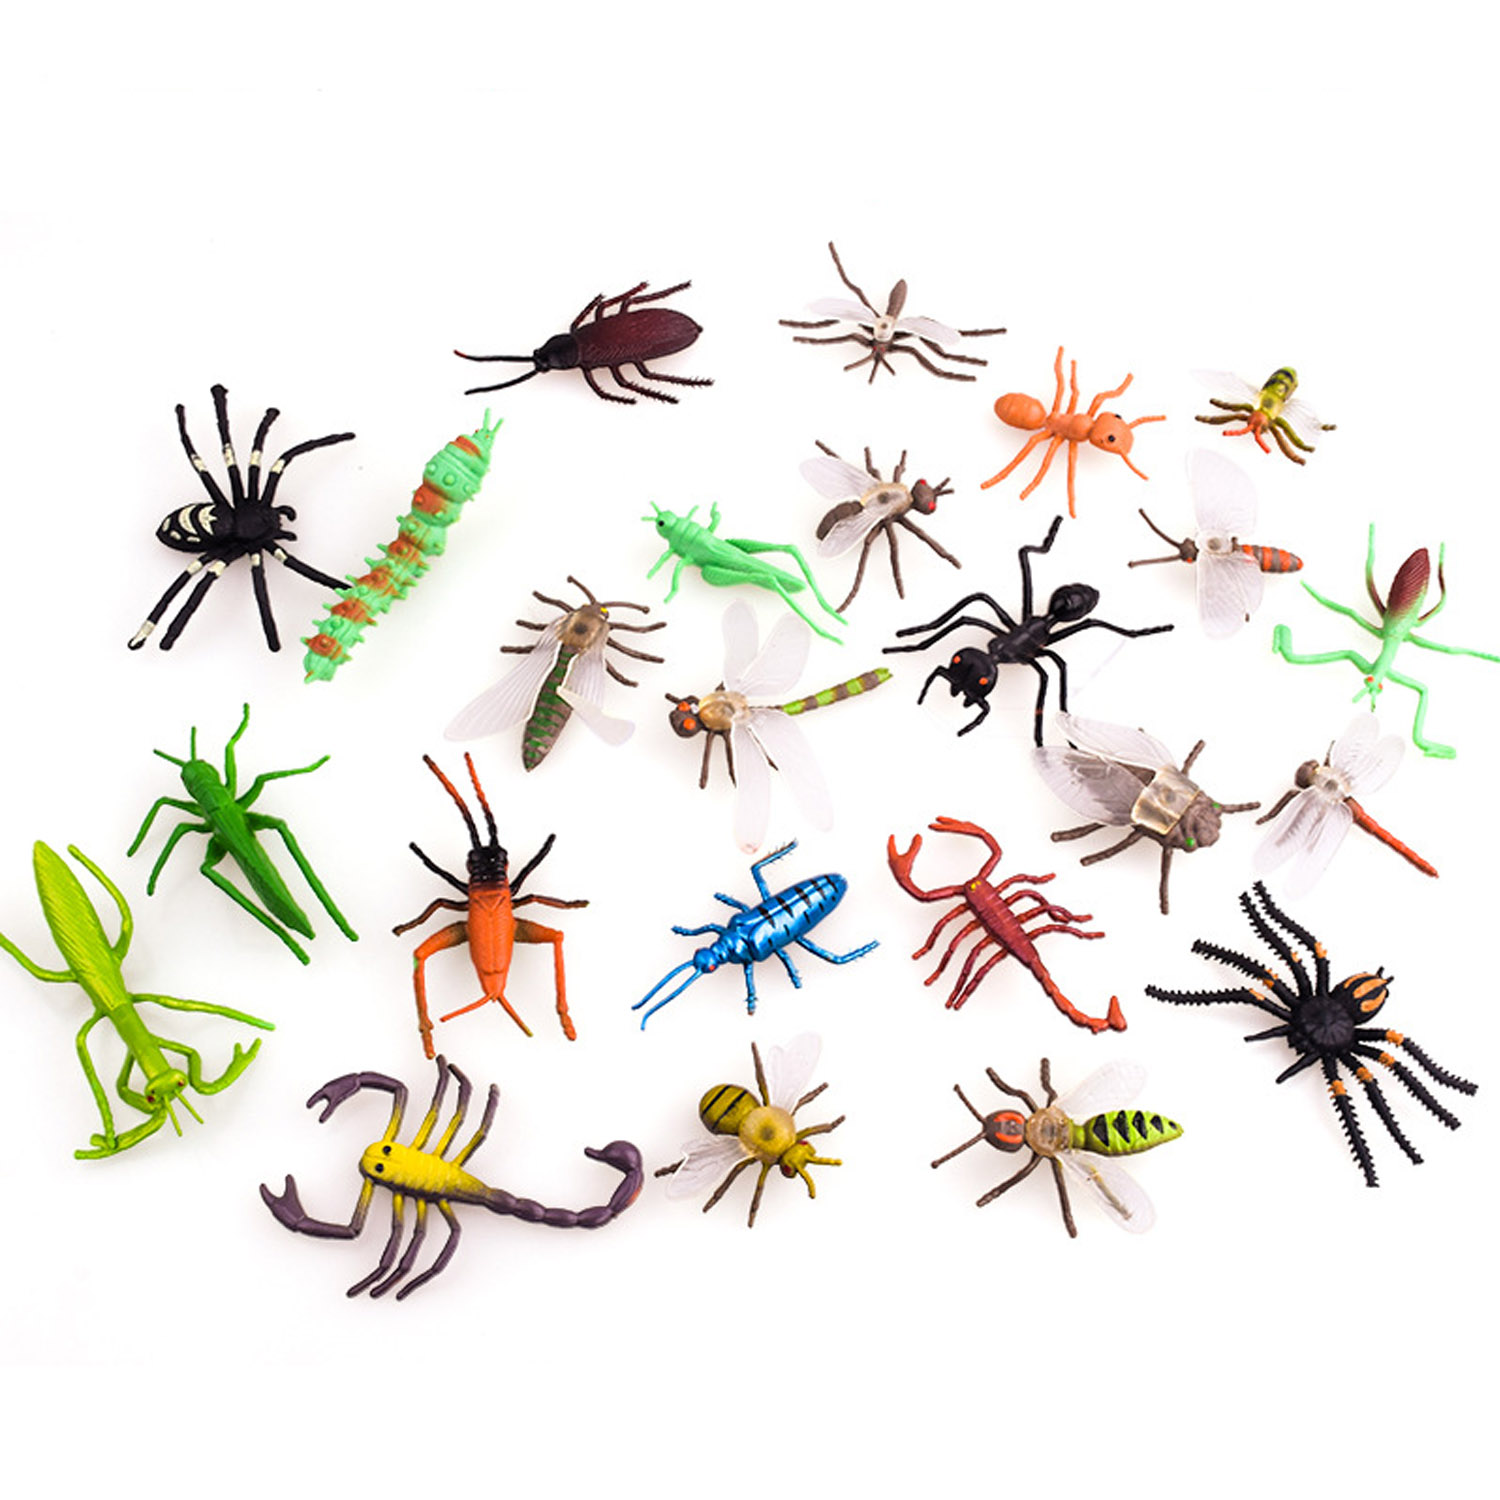 Animal Series Model Figures 12PCS Mini Simulation PVC Insect Animals Models Toys Set Animals Educational Toy For Children Gifts